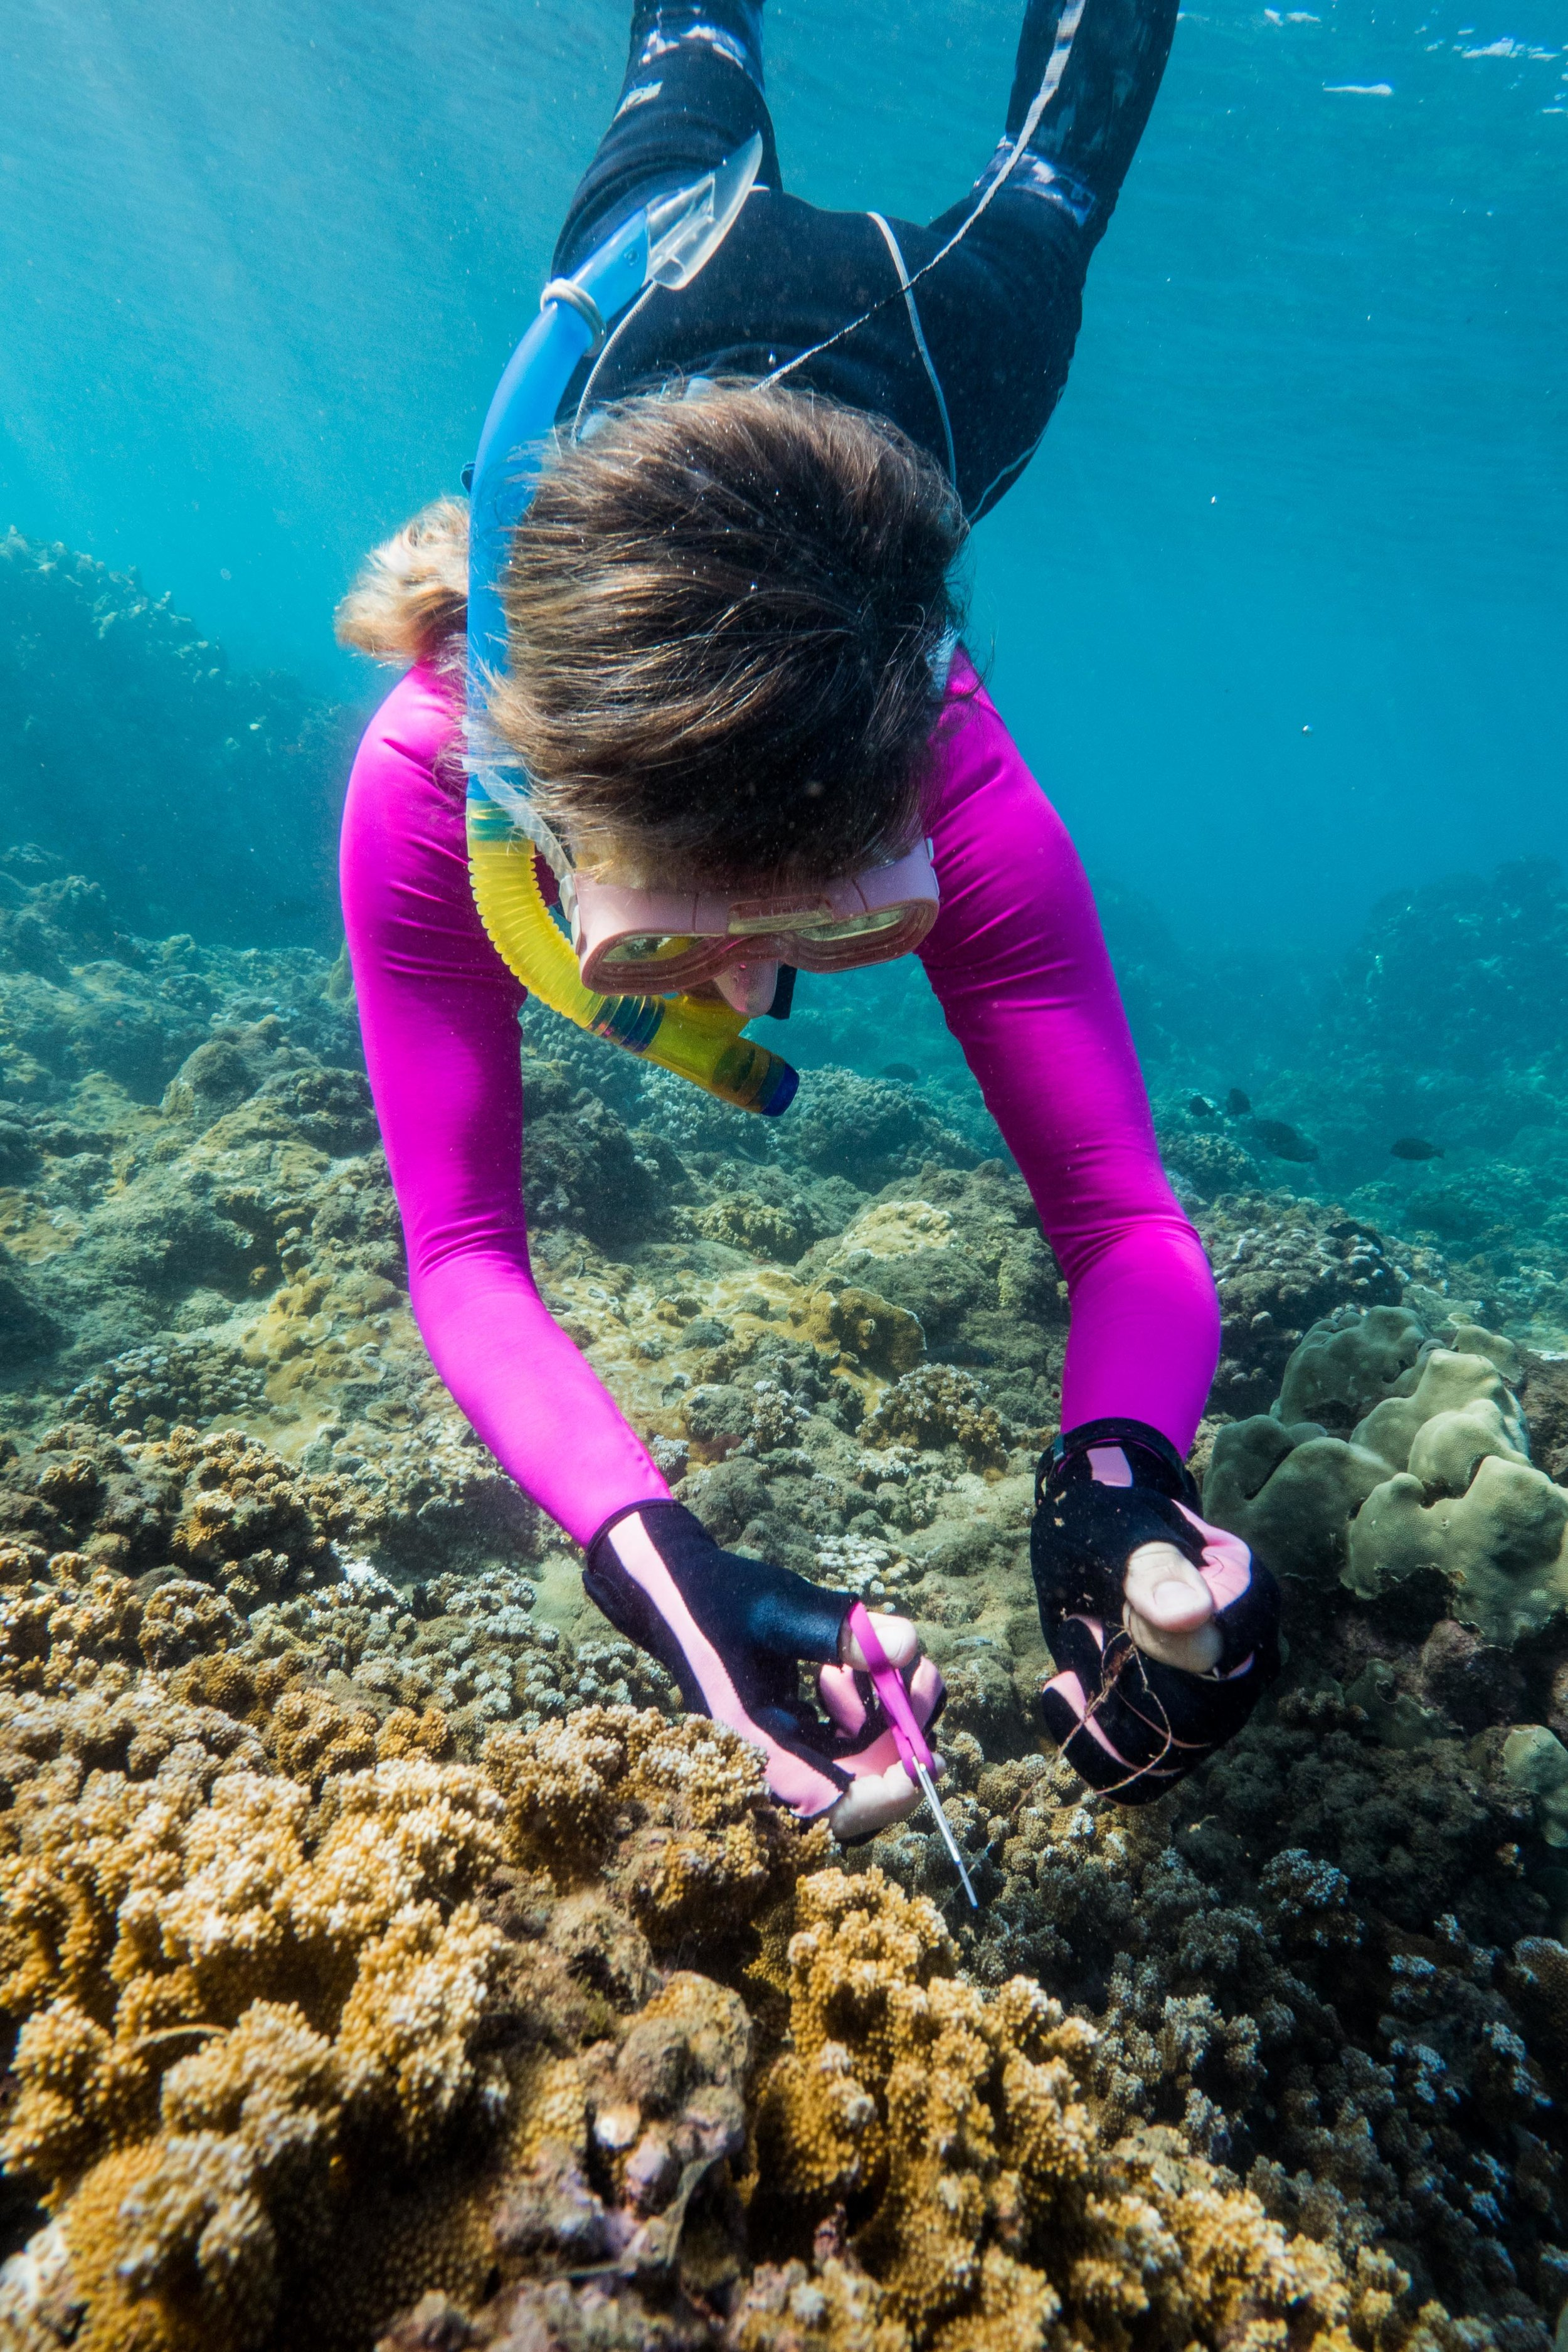 A TIRN volunteer works to cut fishing line away from coral.